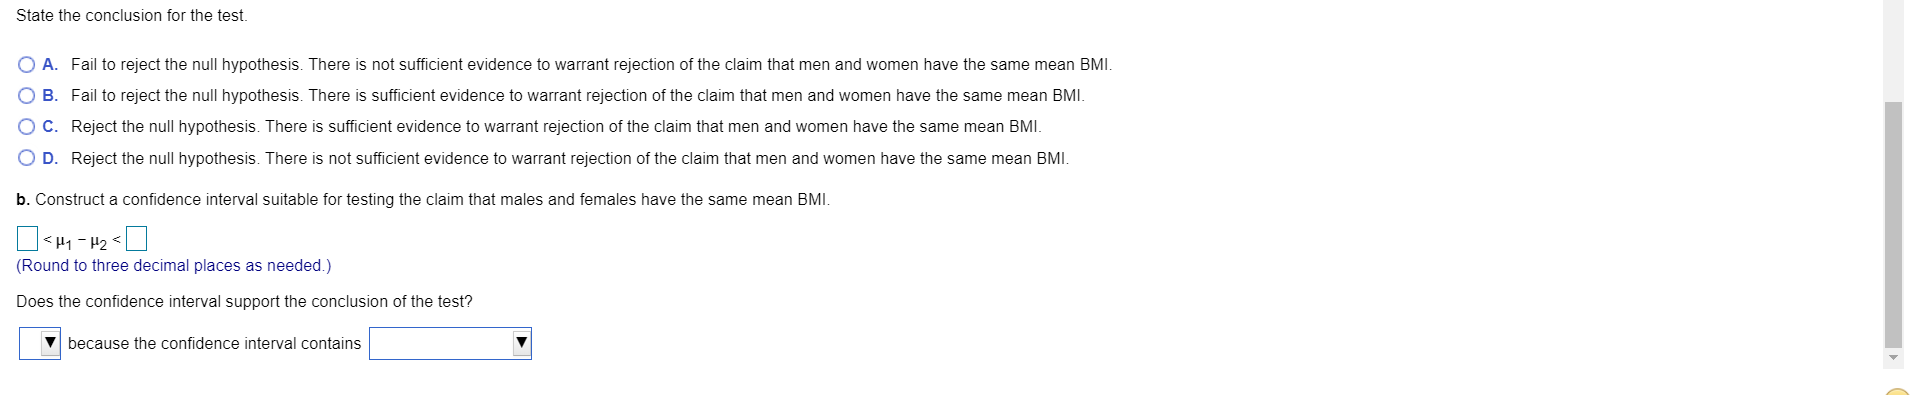 State the conclusion for the test. O A. Fail to reject the null hypothesis. There is not sufficient evidence to warrant rejection of the claim that men and women have the same mean BMI. O B. Fail to reject the null hypothesis. There is sufficient evidence to warrant rejection of the claim that men and women have the same mean BMI. O C. Reject the null hypothesis. There is sufficient evidence to warrant rejection of the claim that men and women have the same mean BMI. O D. Reject the null hypothesis. There is not sufficient evidence to warrant rejection of the claim that men and women have the same mean BMI. b. Construct a confidence interval suitable for testing the claim that males and females have the same mean BMI. <H1 - H2 < (Round to three decimal places as needed.) Does the confidence interval support the conclusion of the test? V because the confidence interval contains